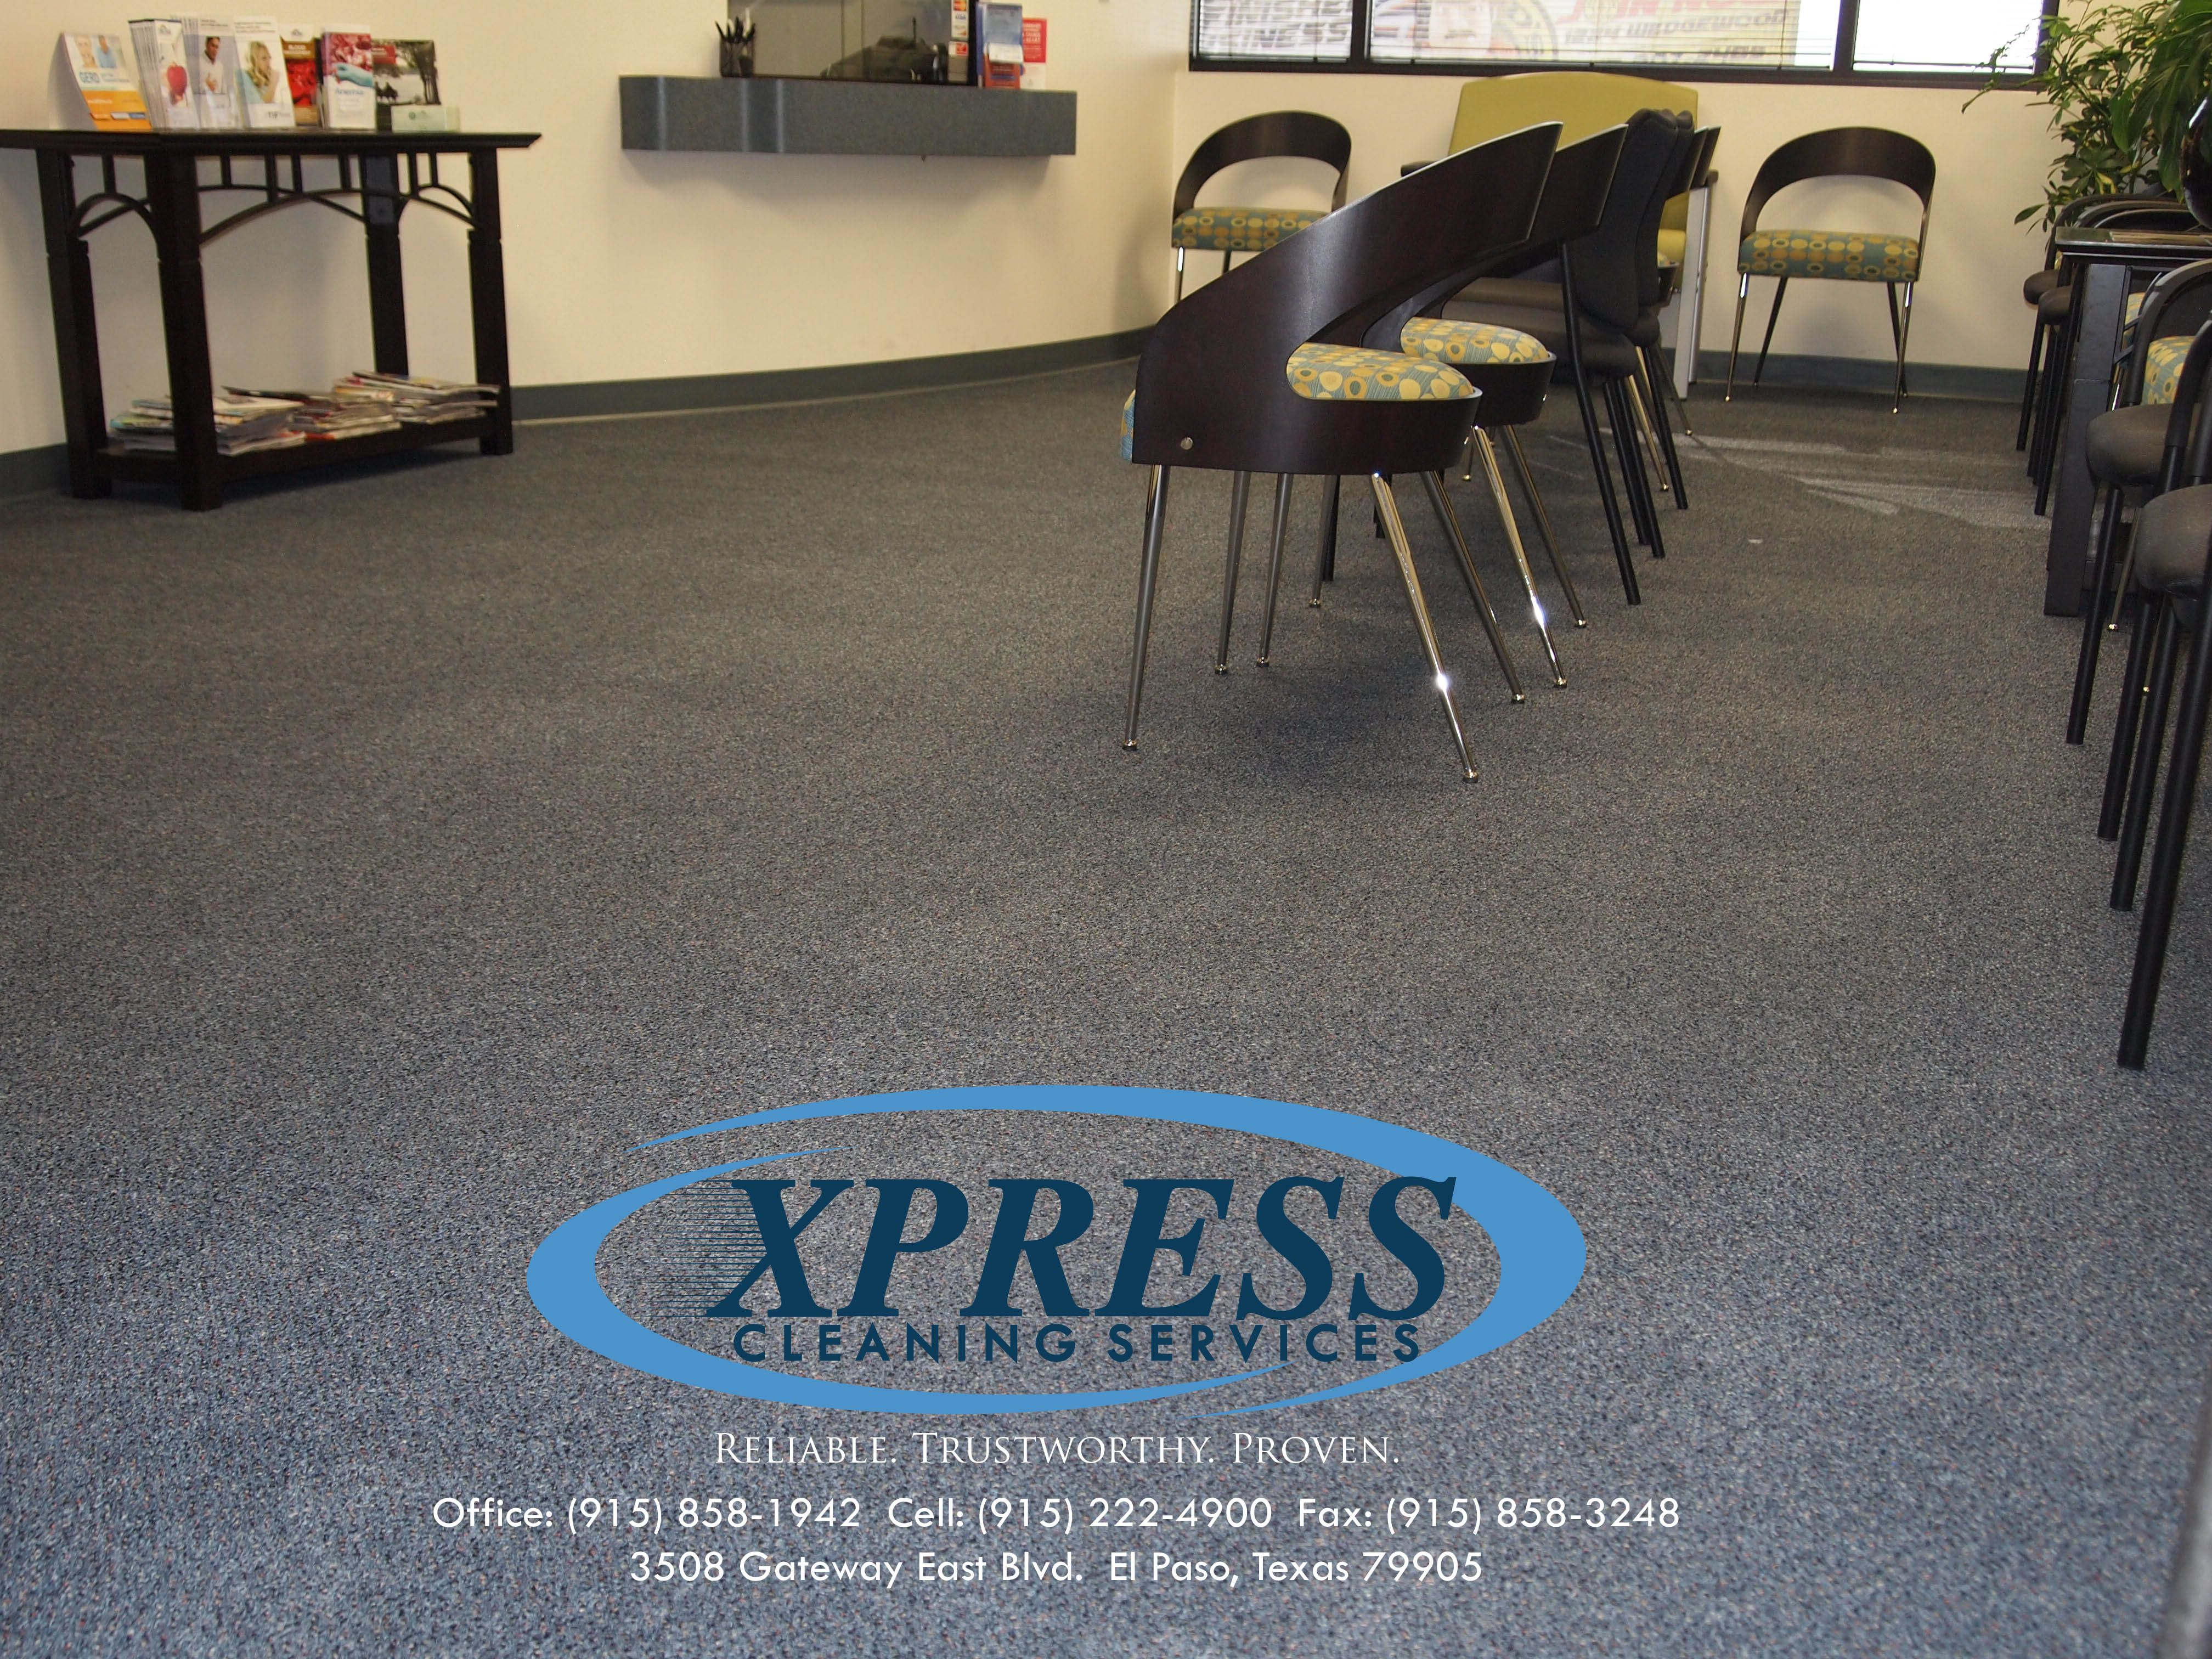 Carpet Cleaning By Xpress Cleaning Services How To Clean Carpet Cleaning Service Janitorial Services